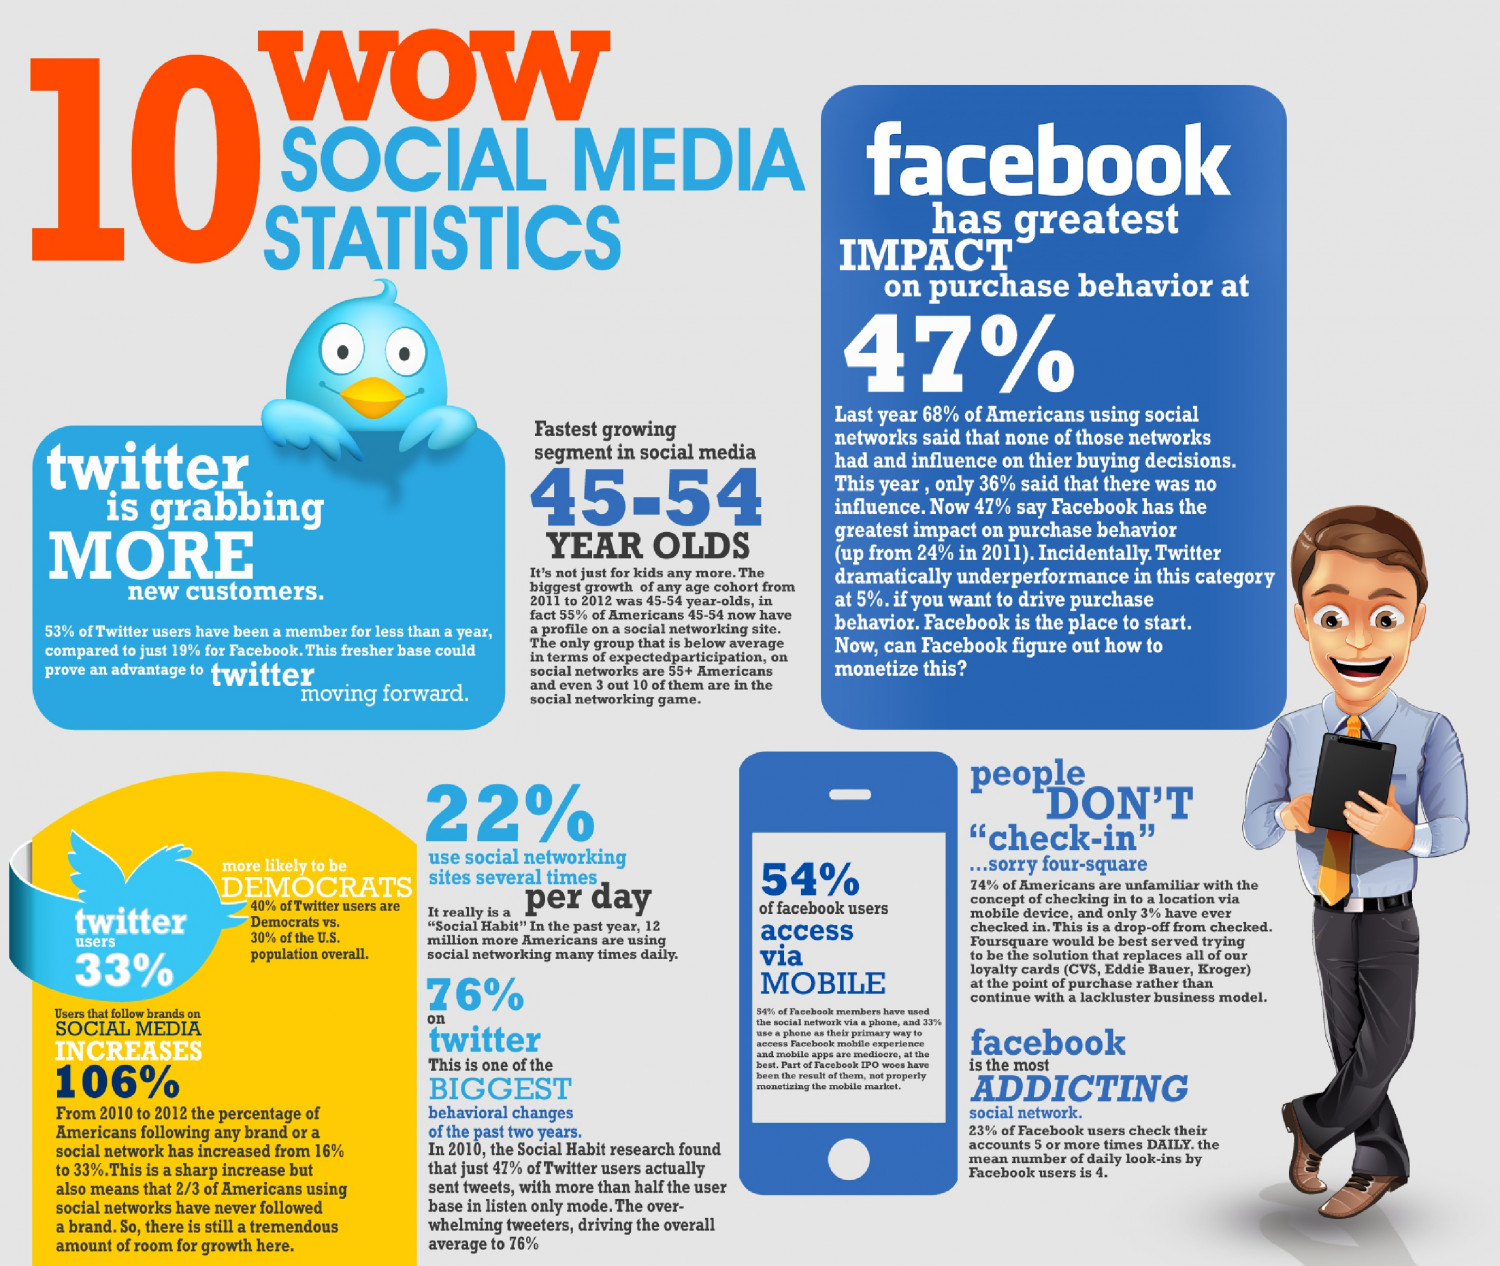 10 Wow Social Media Statistics Visual Ly